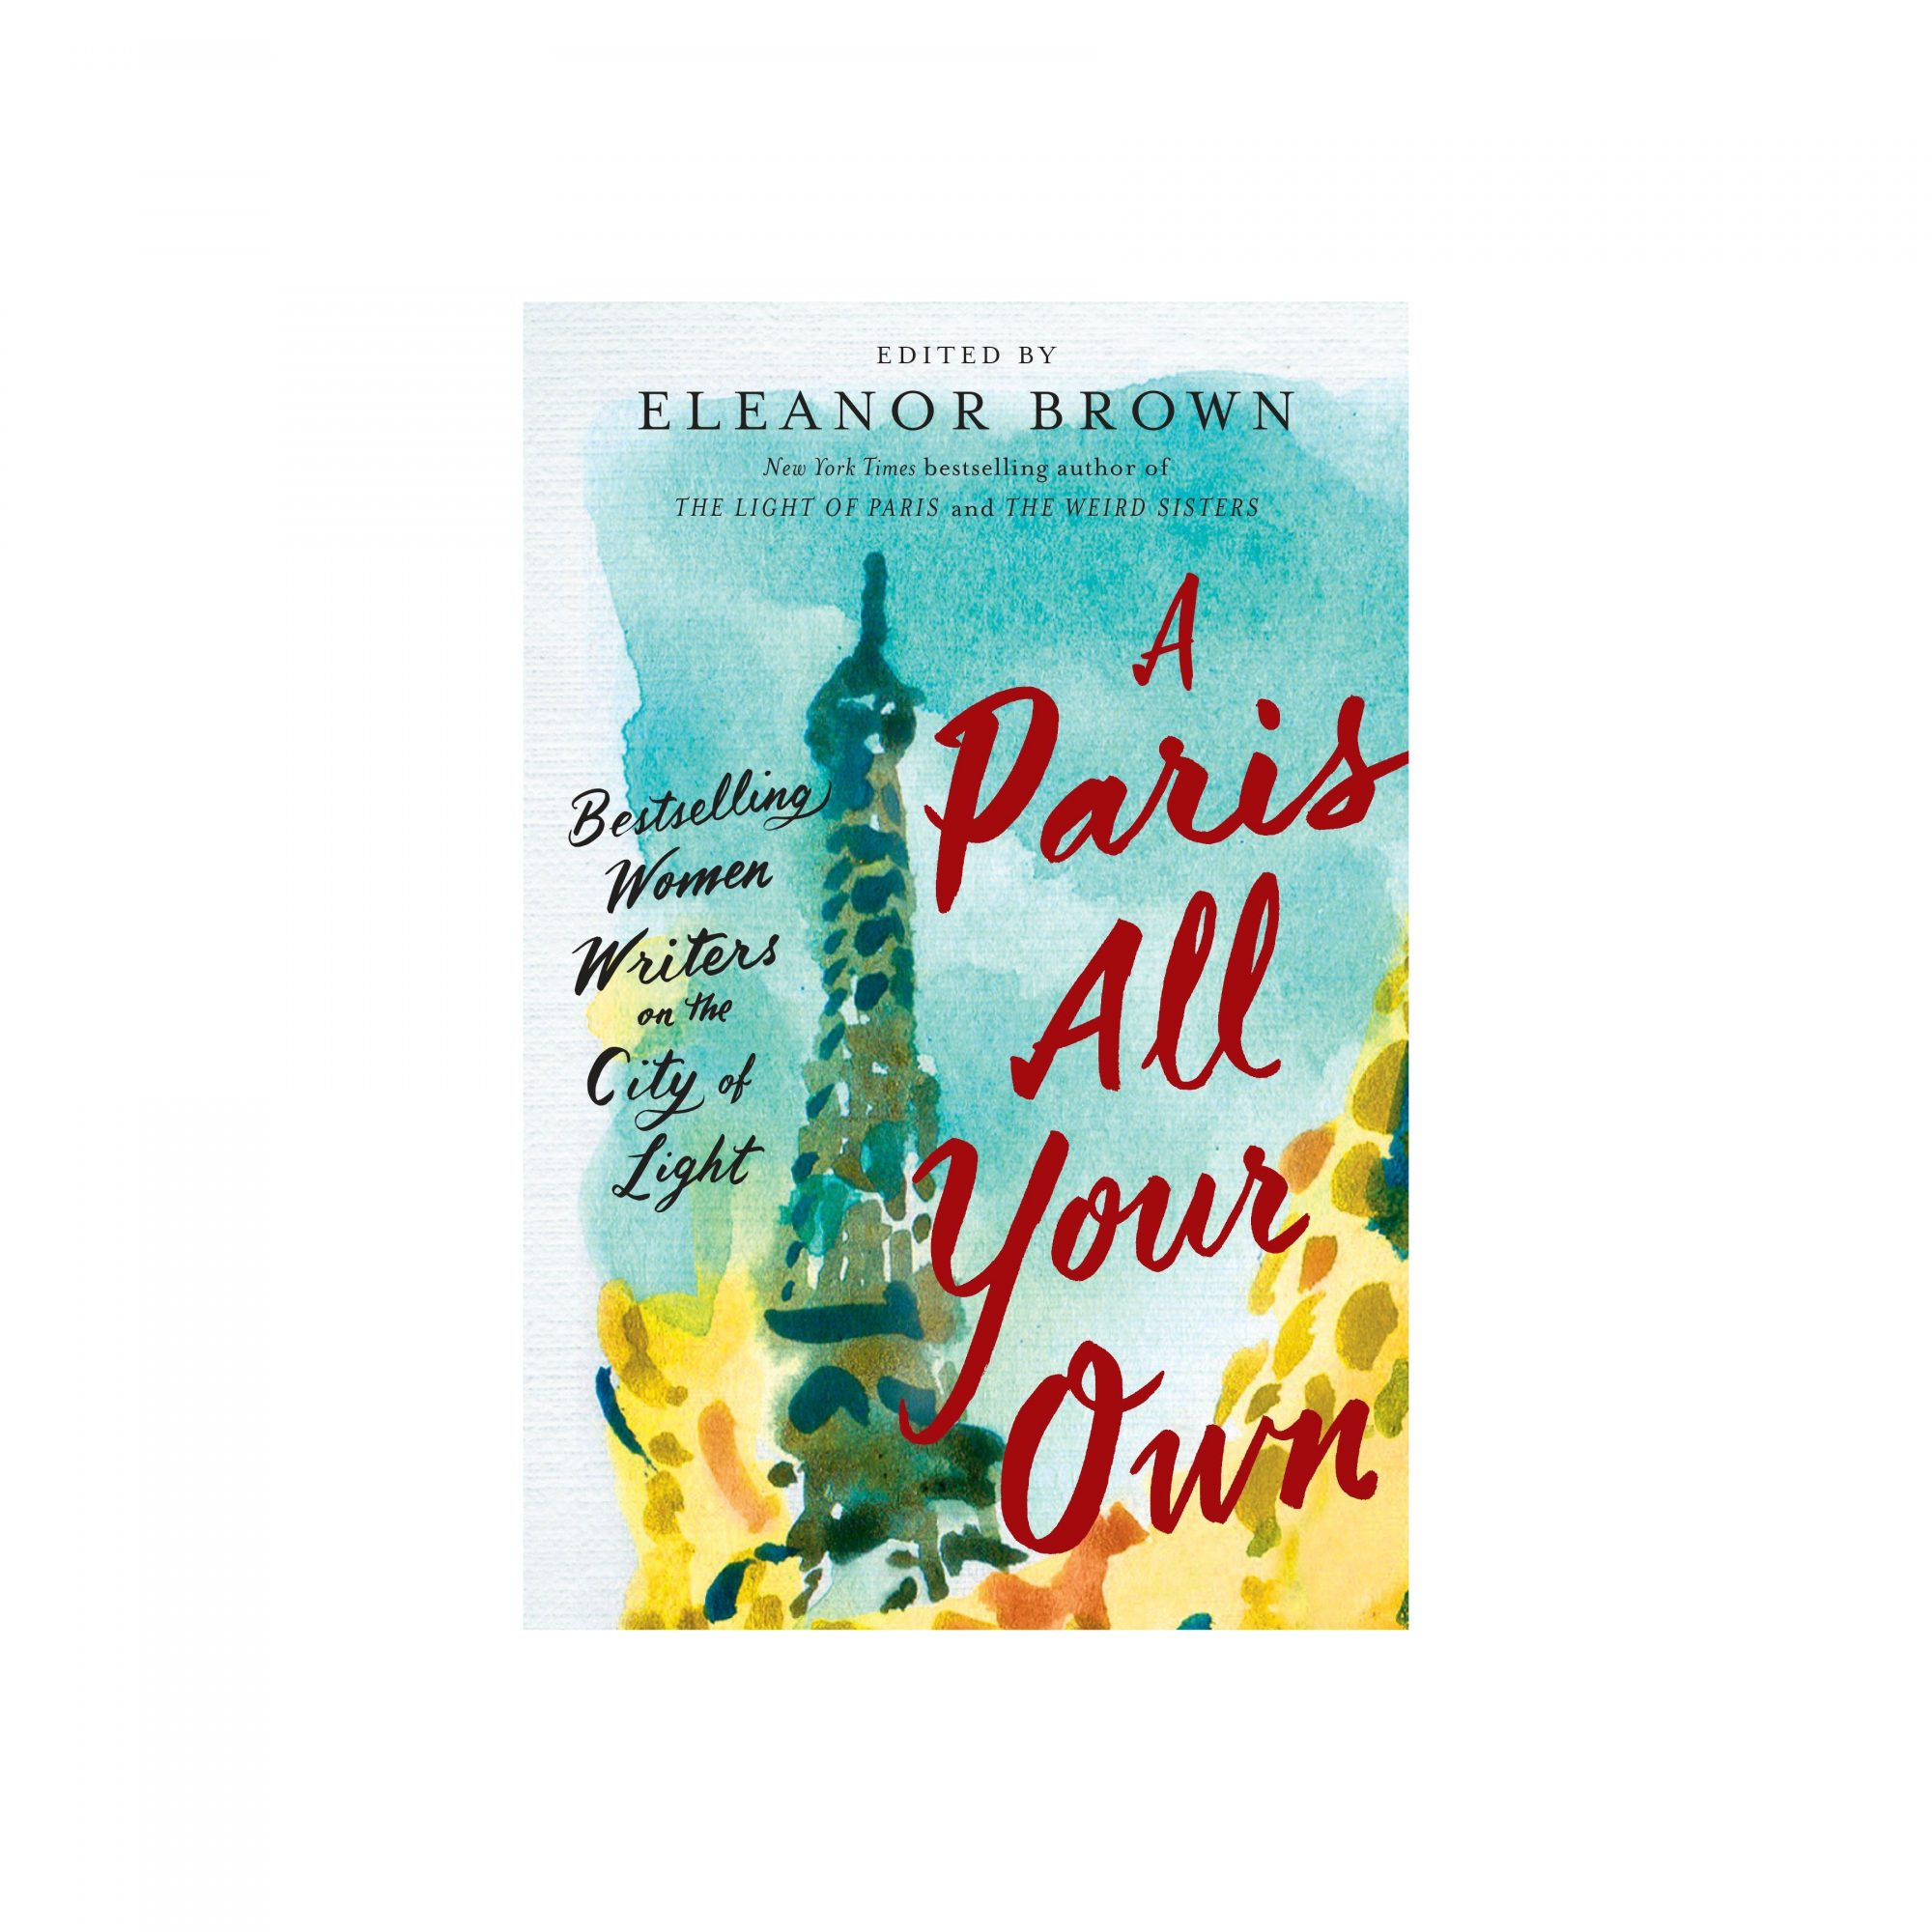 A Paris All Your Own: Bestselling Women Writers on the City of Light, by Eleanor Brown